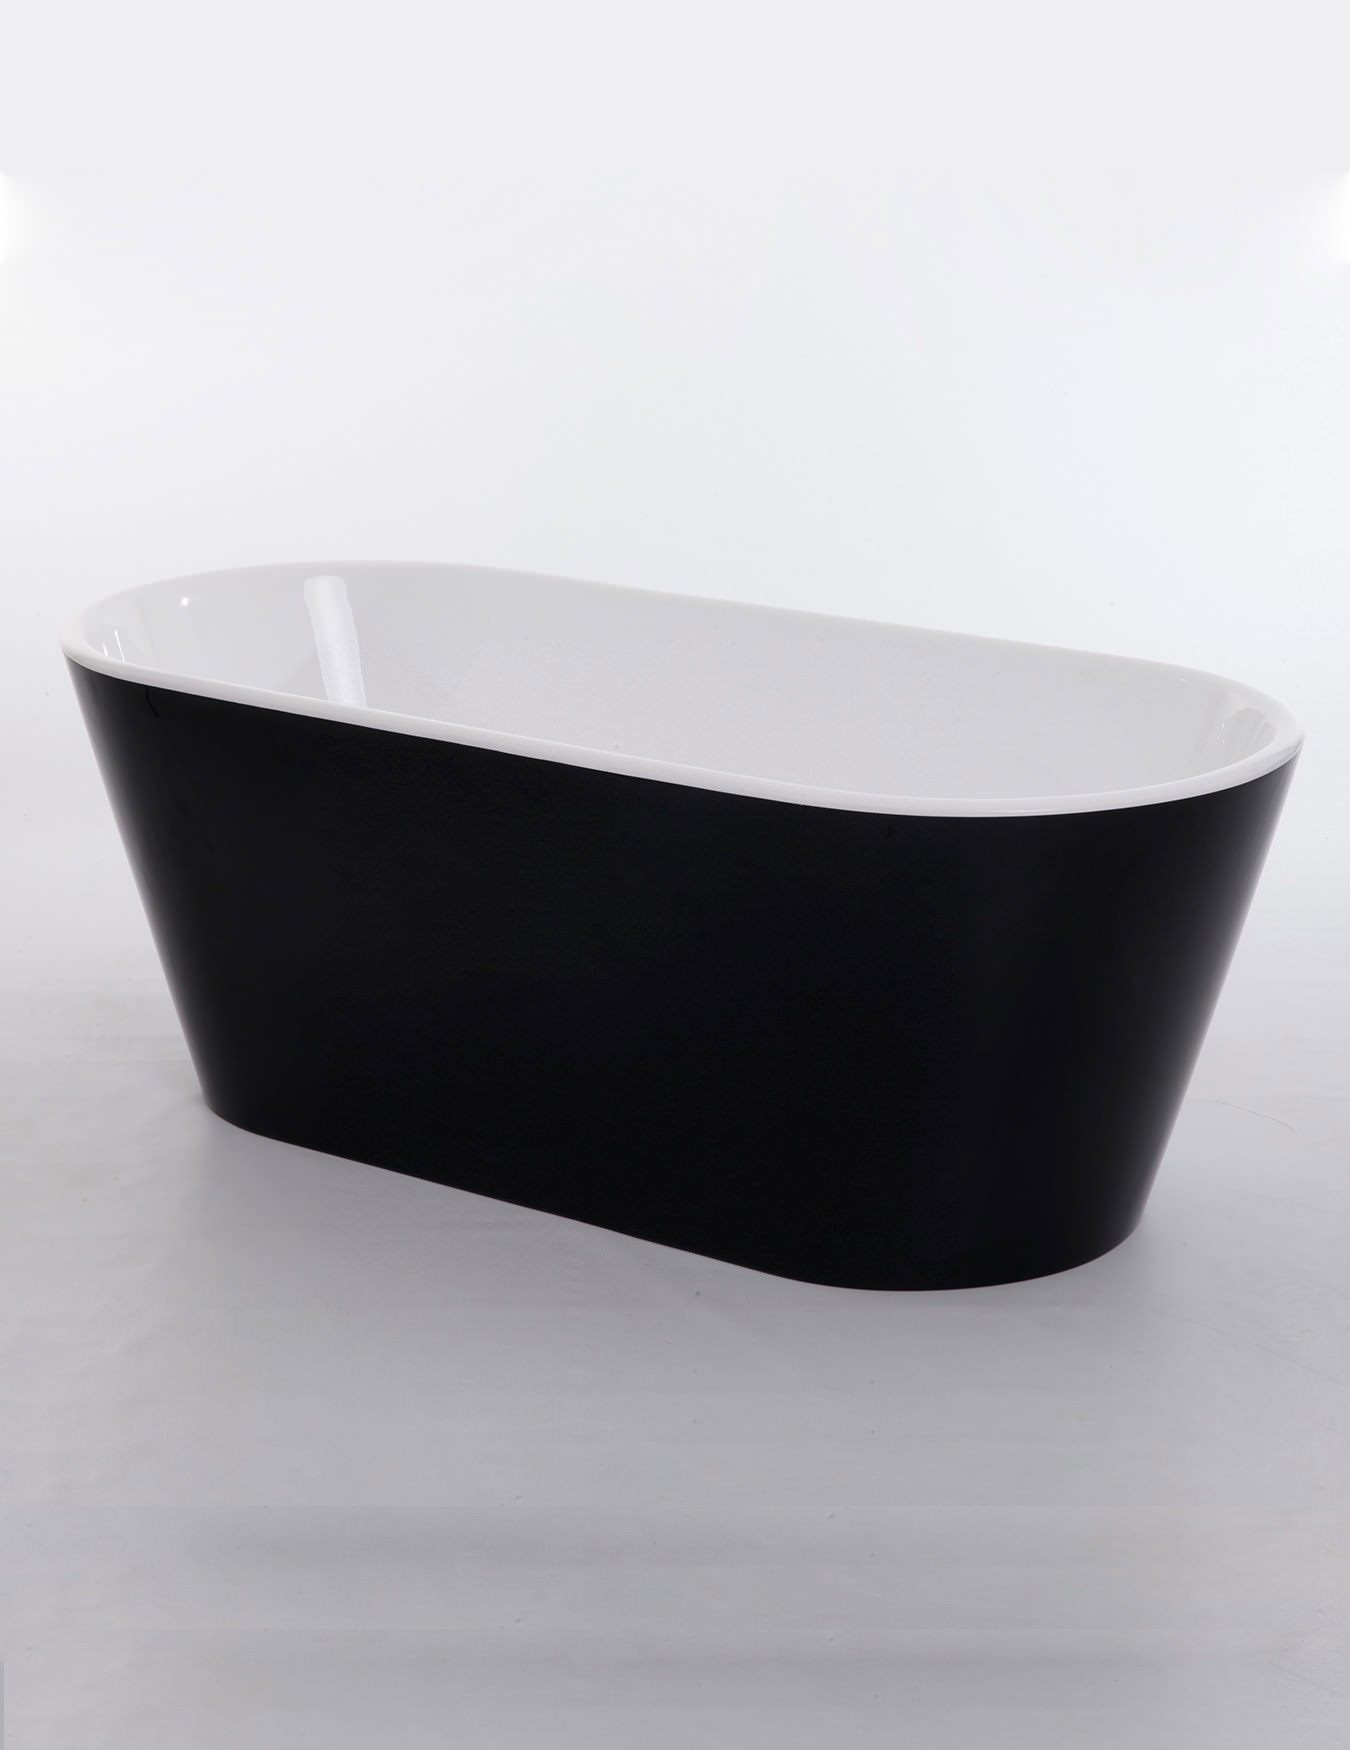 Royce Morgan Black Sapphire Black Freestanding Bath 1650 X 735mm